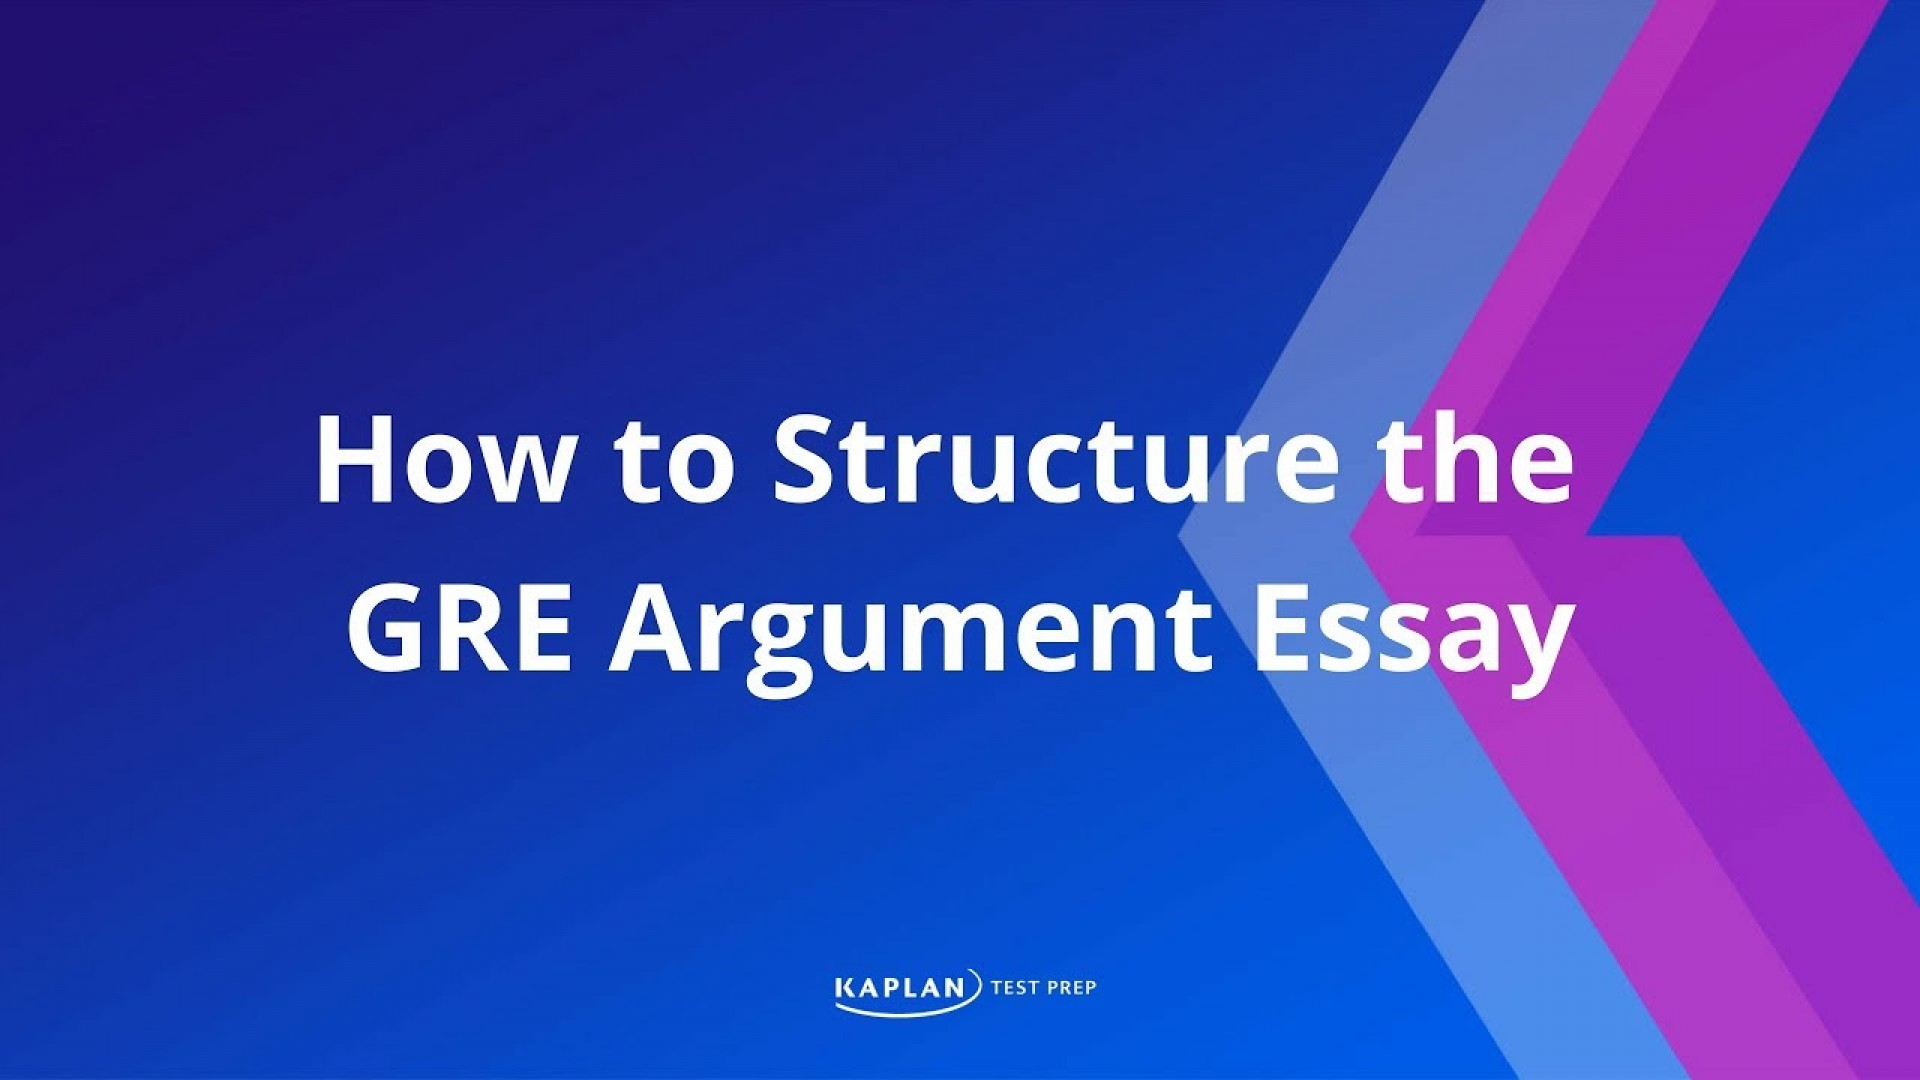 011 Gre Argument Essay Samples Maxresdefault Sensational Sample Questions Template Solution 1920